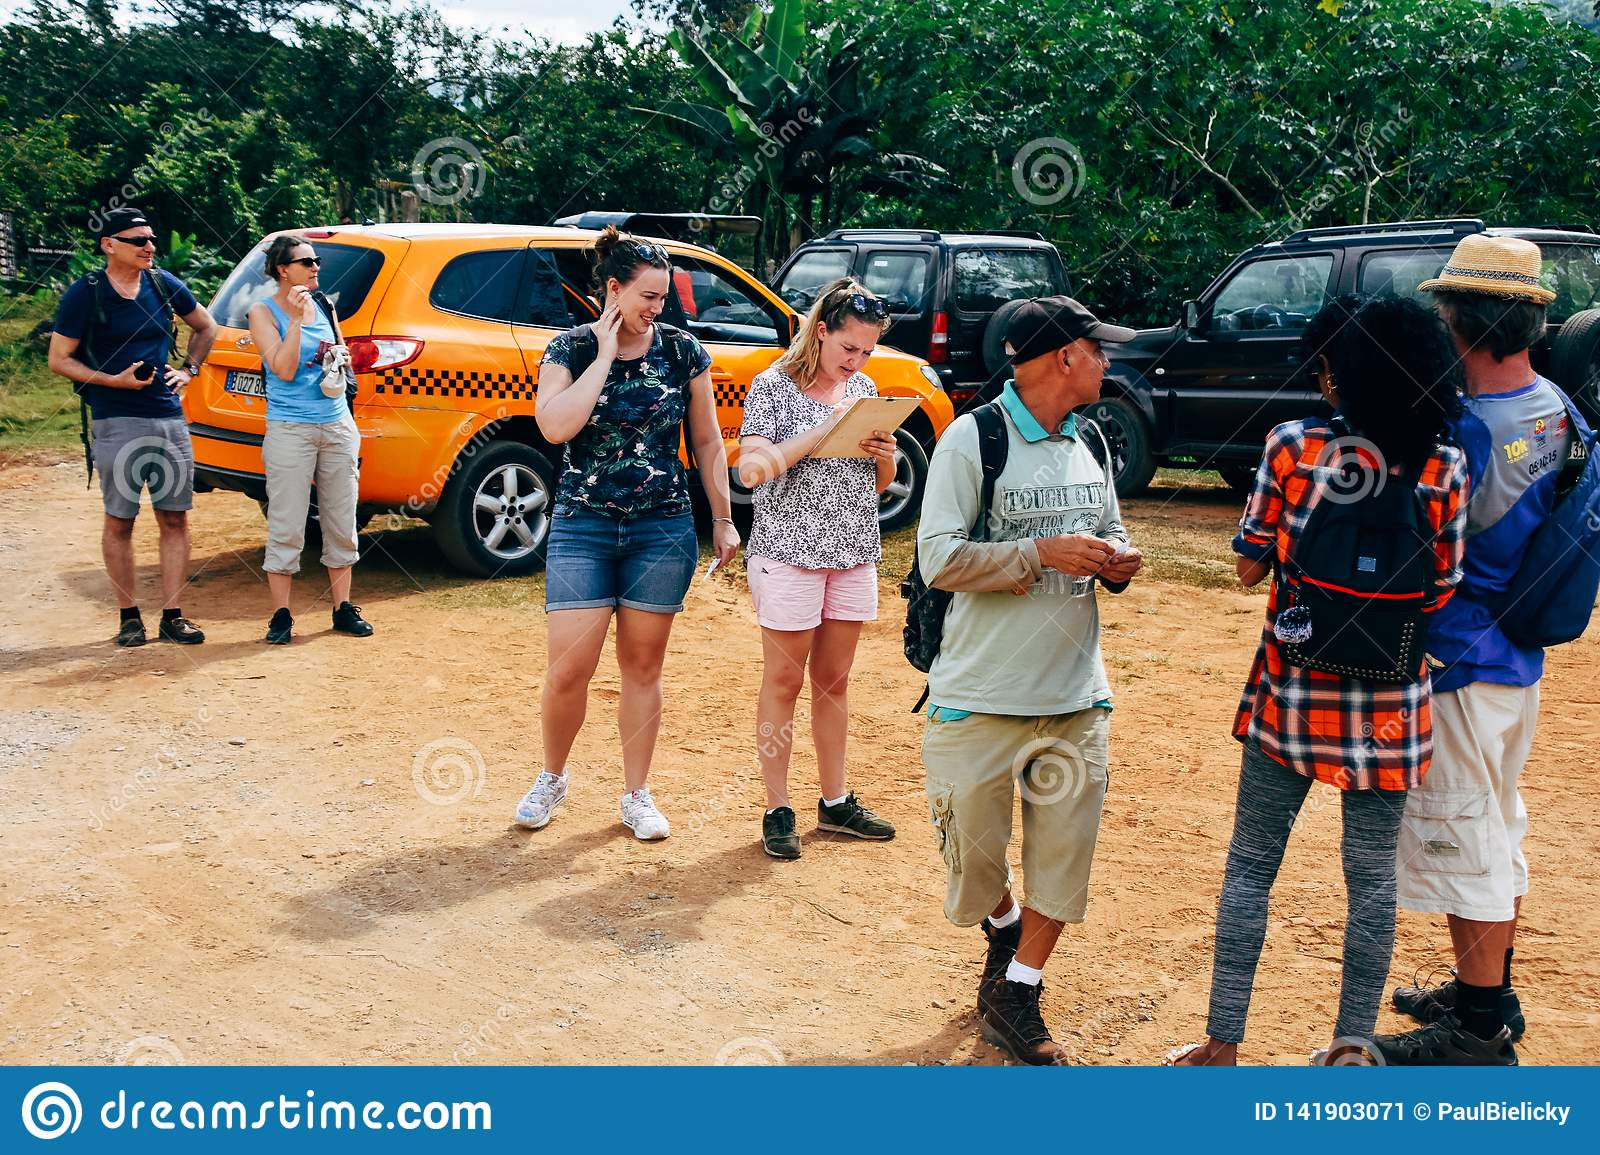 Tourists getting ready for a hike in the rain forests near Trinidad, Cuba.